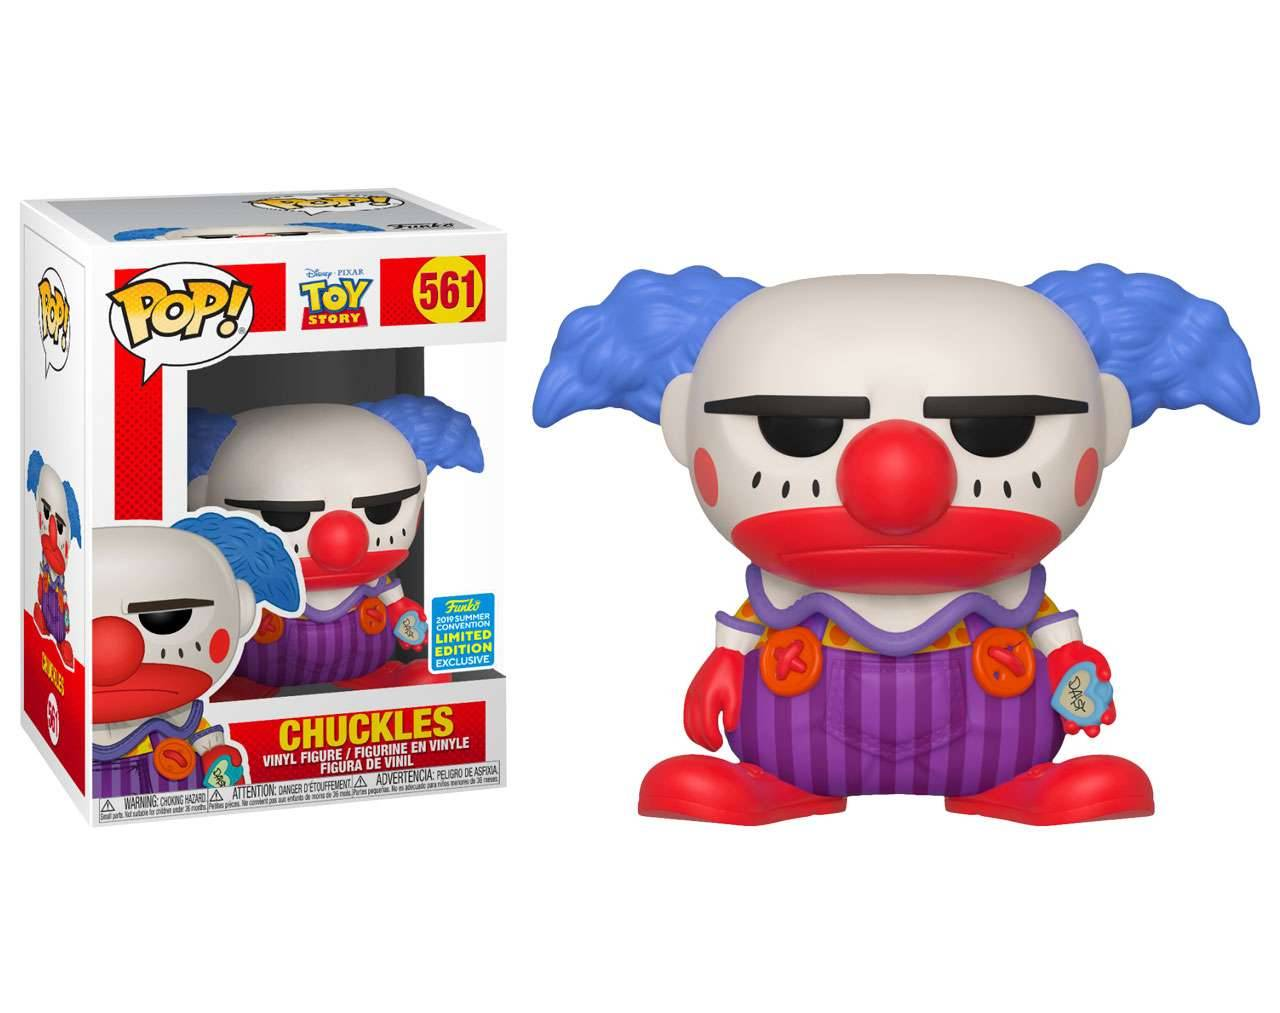 Chuckles (SDCC 2019) Pop! Vinyl